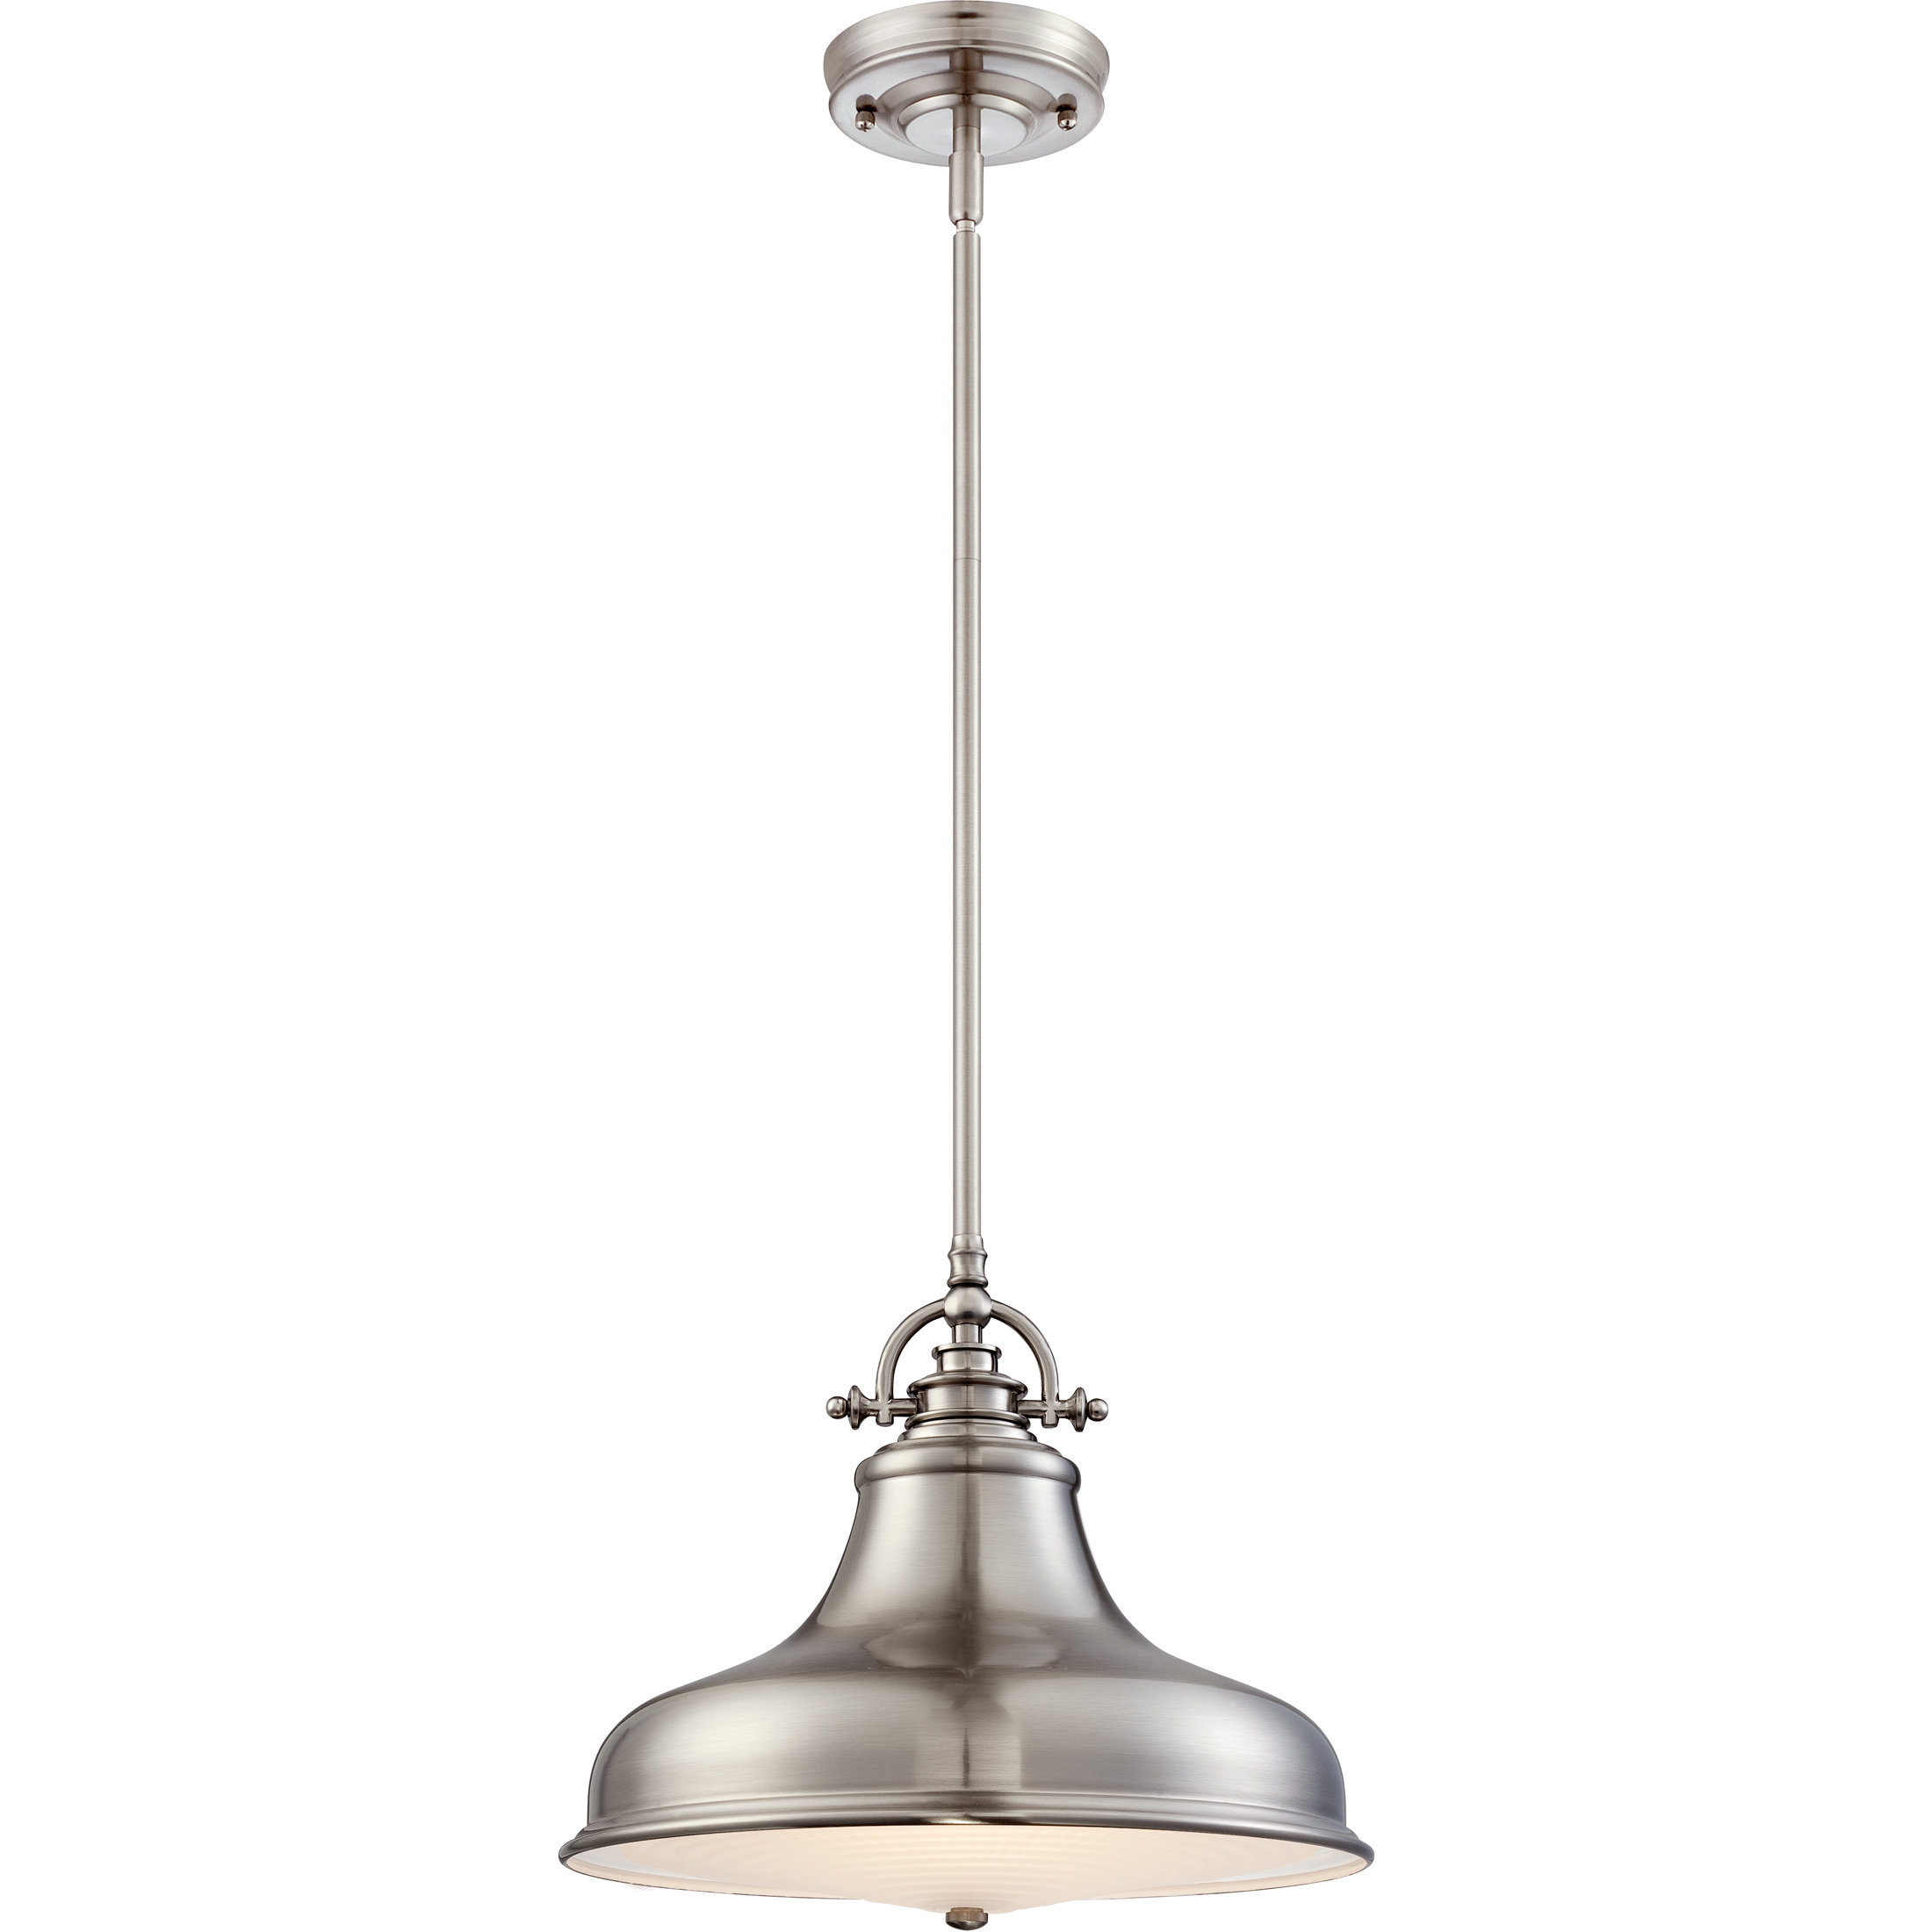 2019 Mueller 1 Light Single Dome Pendants Within Mueller 1 Light Single Dome Pendant (Gallery 1 of 20)